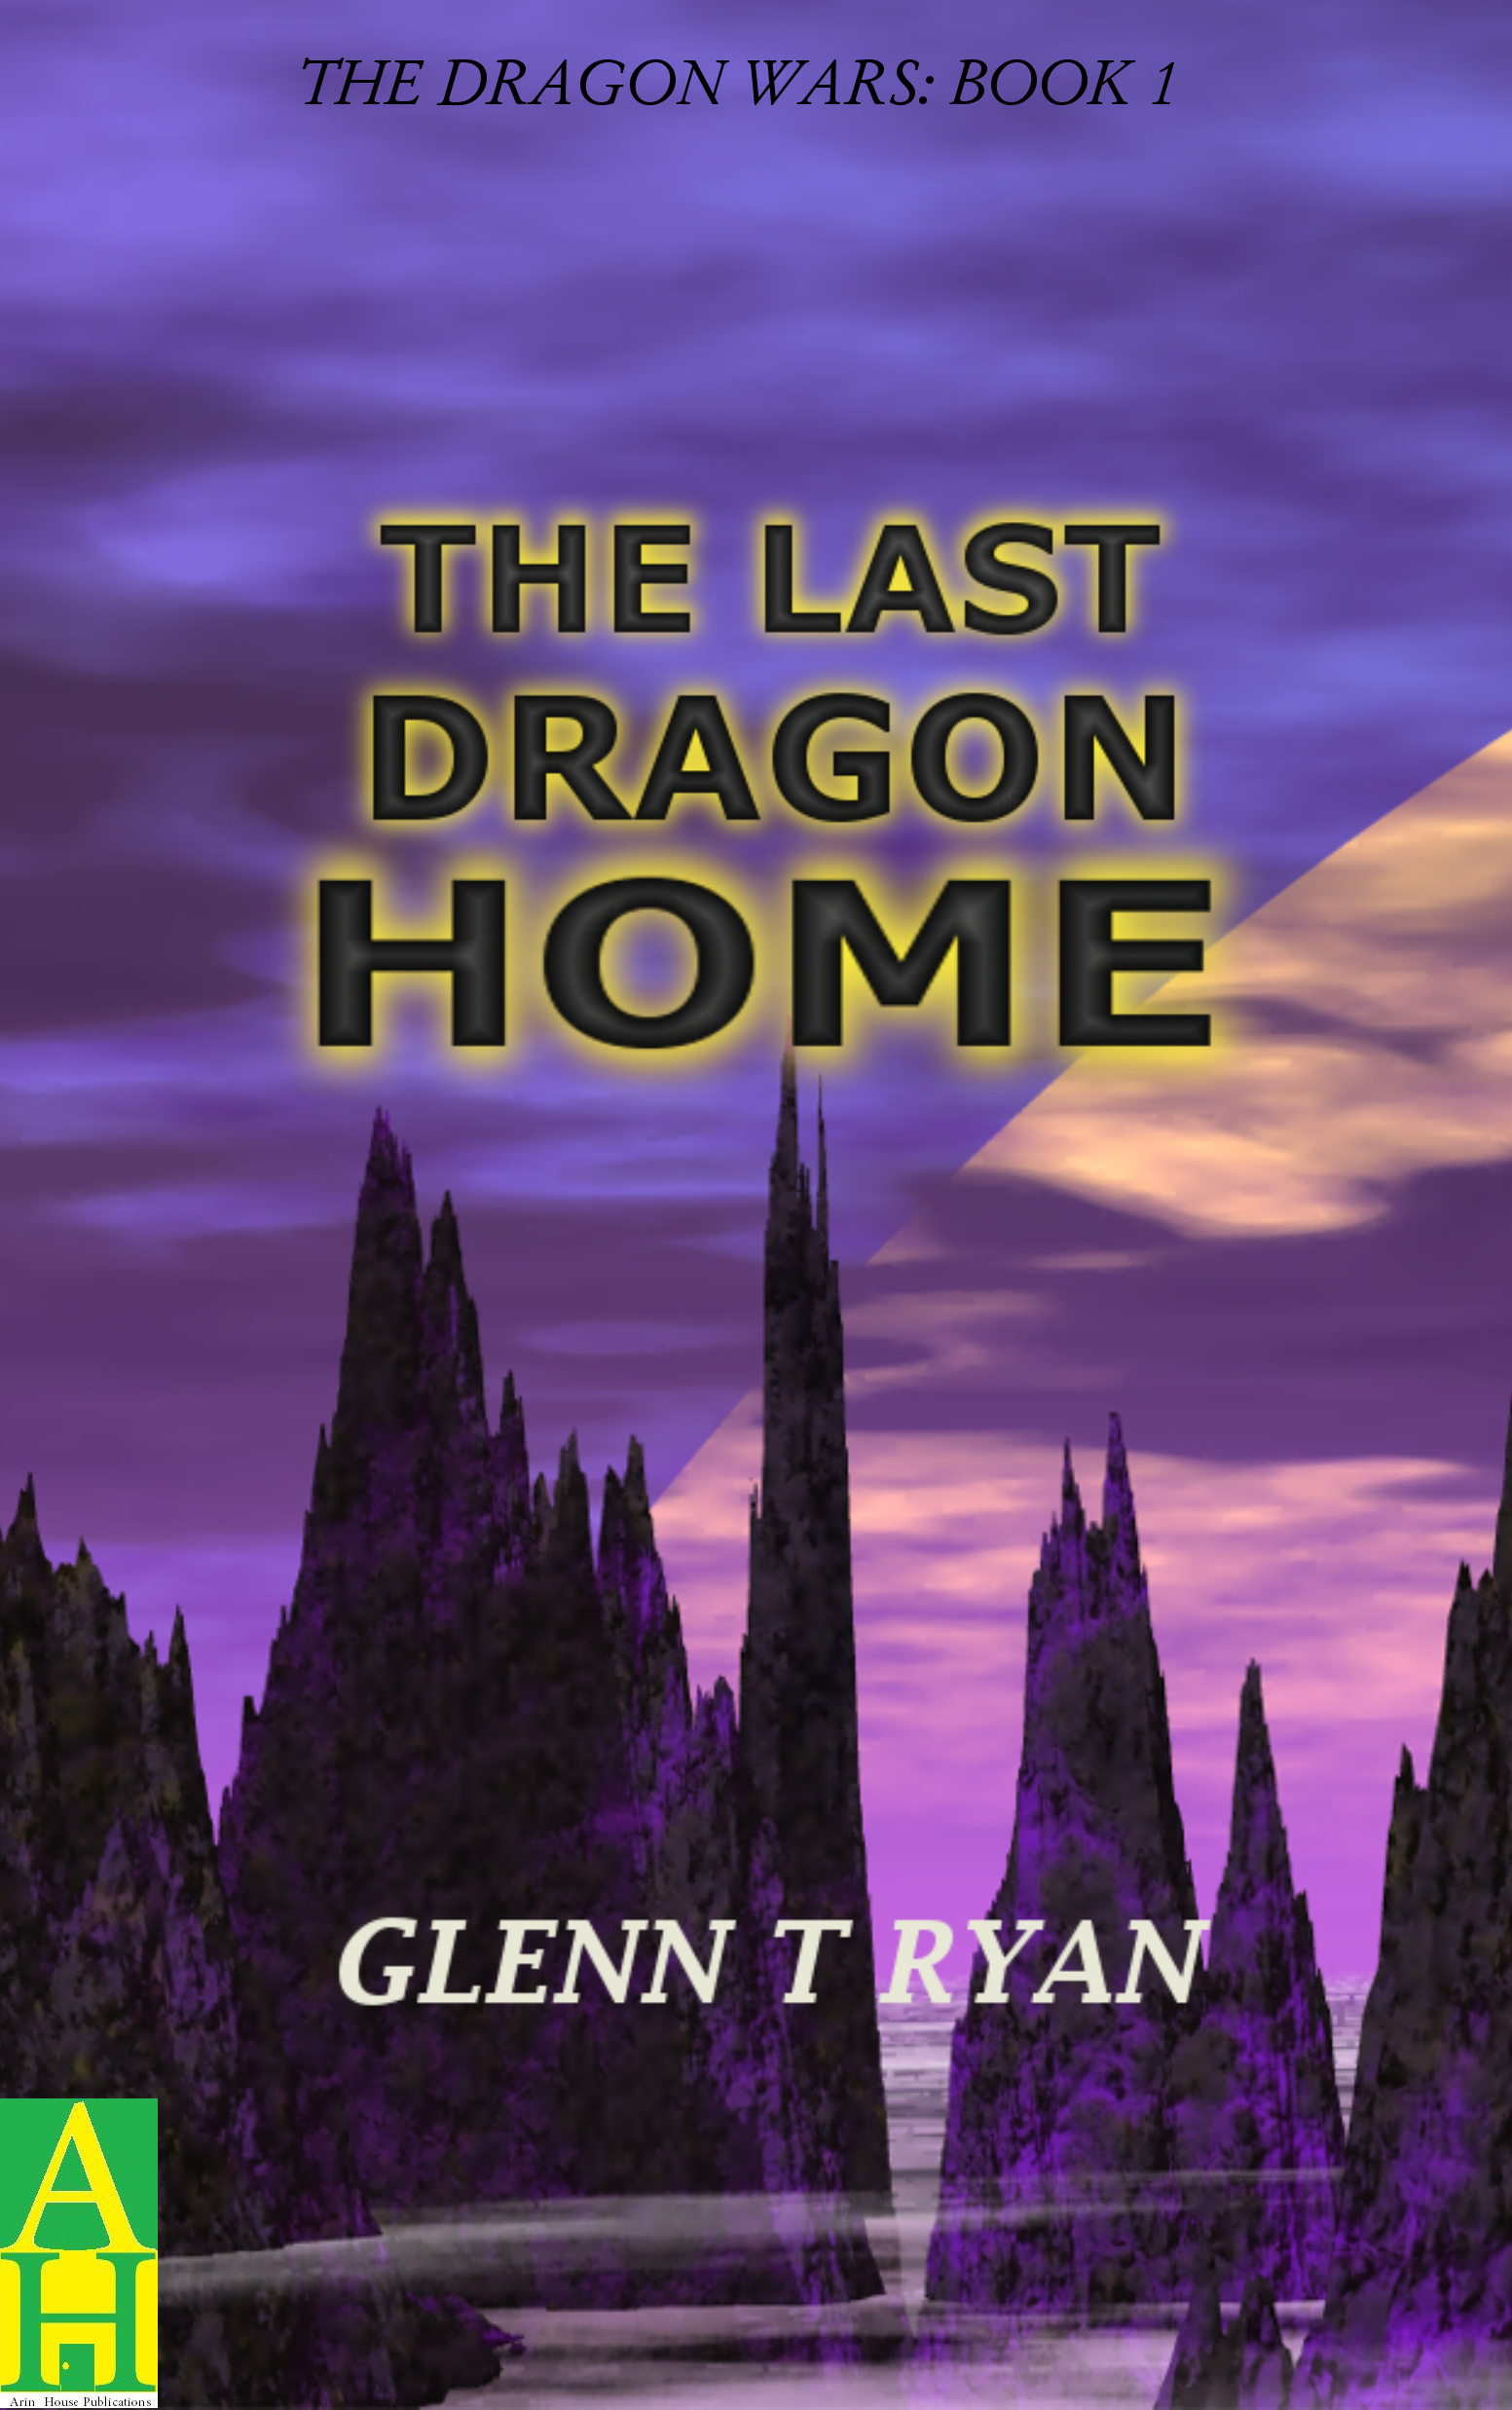 The Last Dragon Home